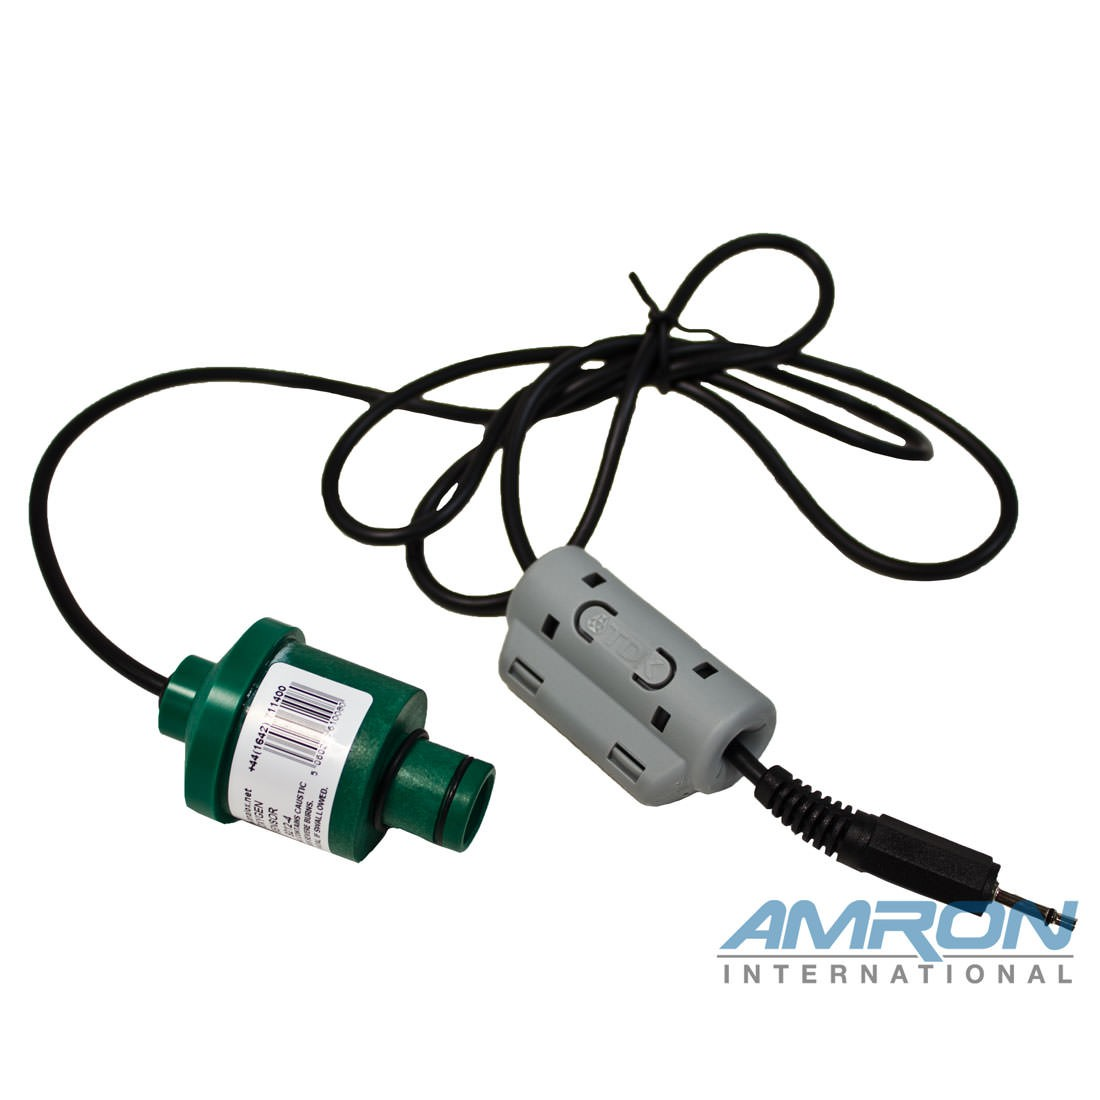 Analox 9100-9212-4 Oxygen Sensor Including Hard Wired Lead with Jack Plug